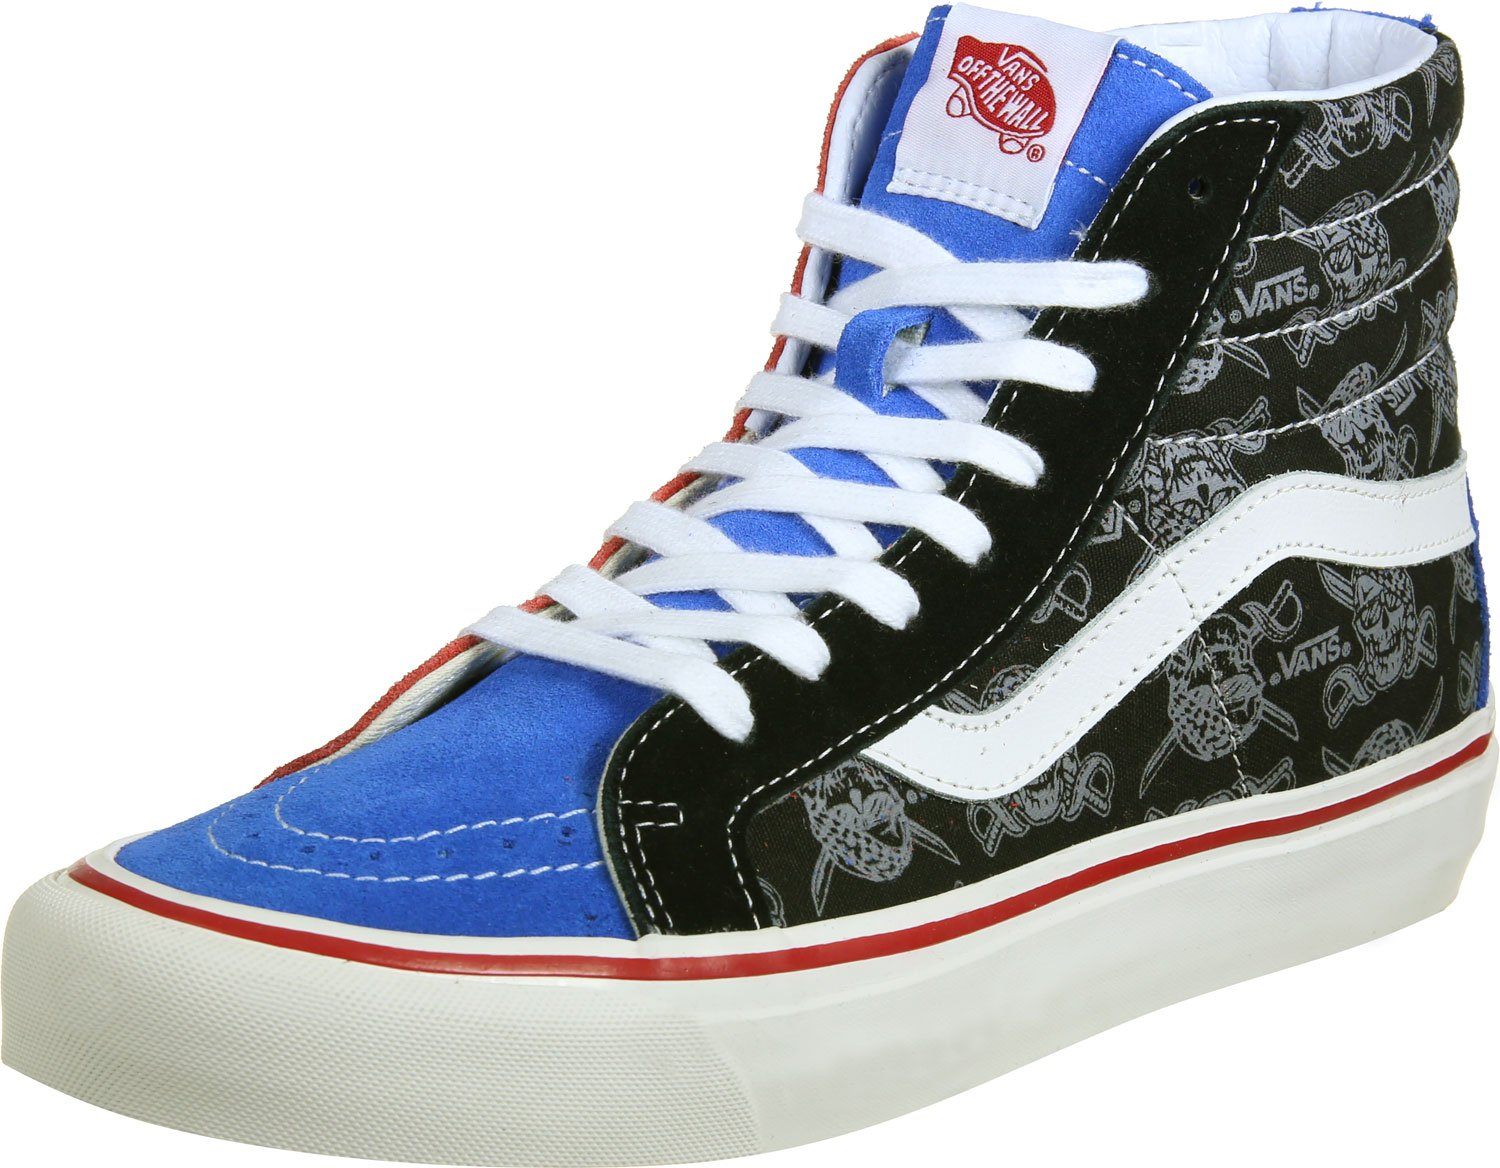 15dbe17a9b Galleon - VANS MENS SK8-HI REISSUE 50TH STV NAVY MULTI SIZE 8